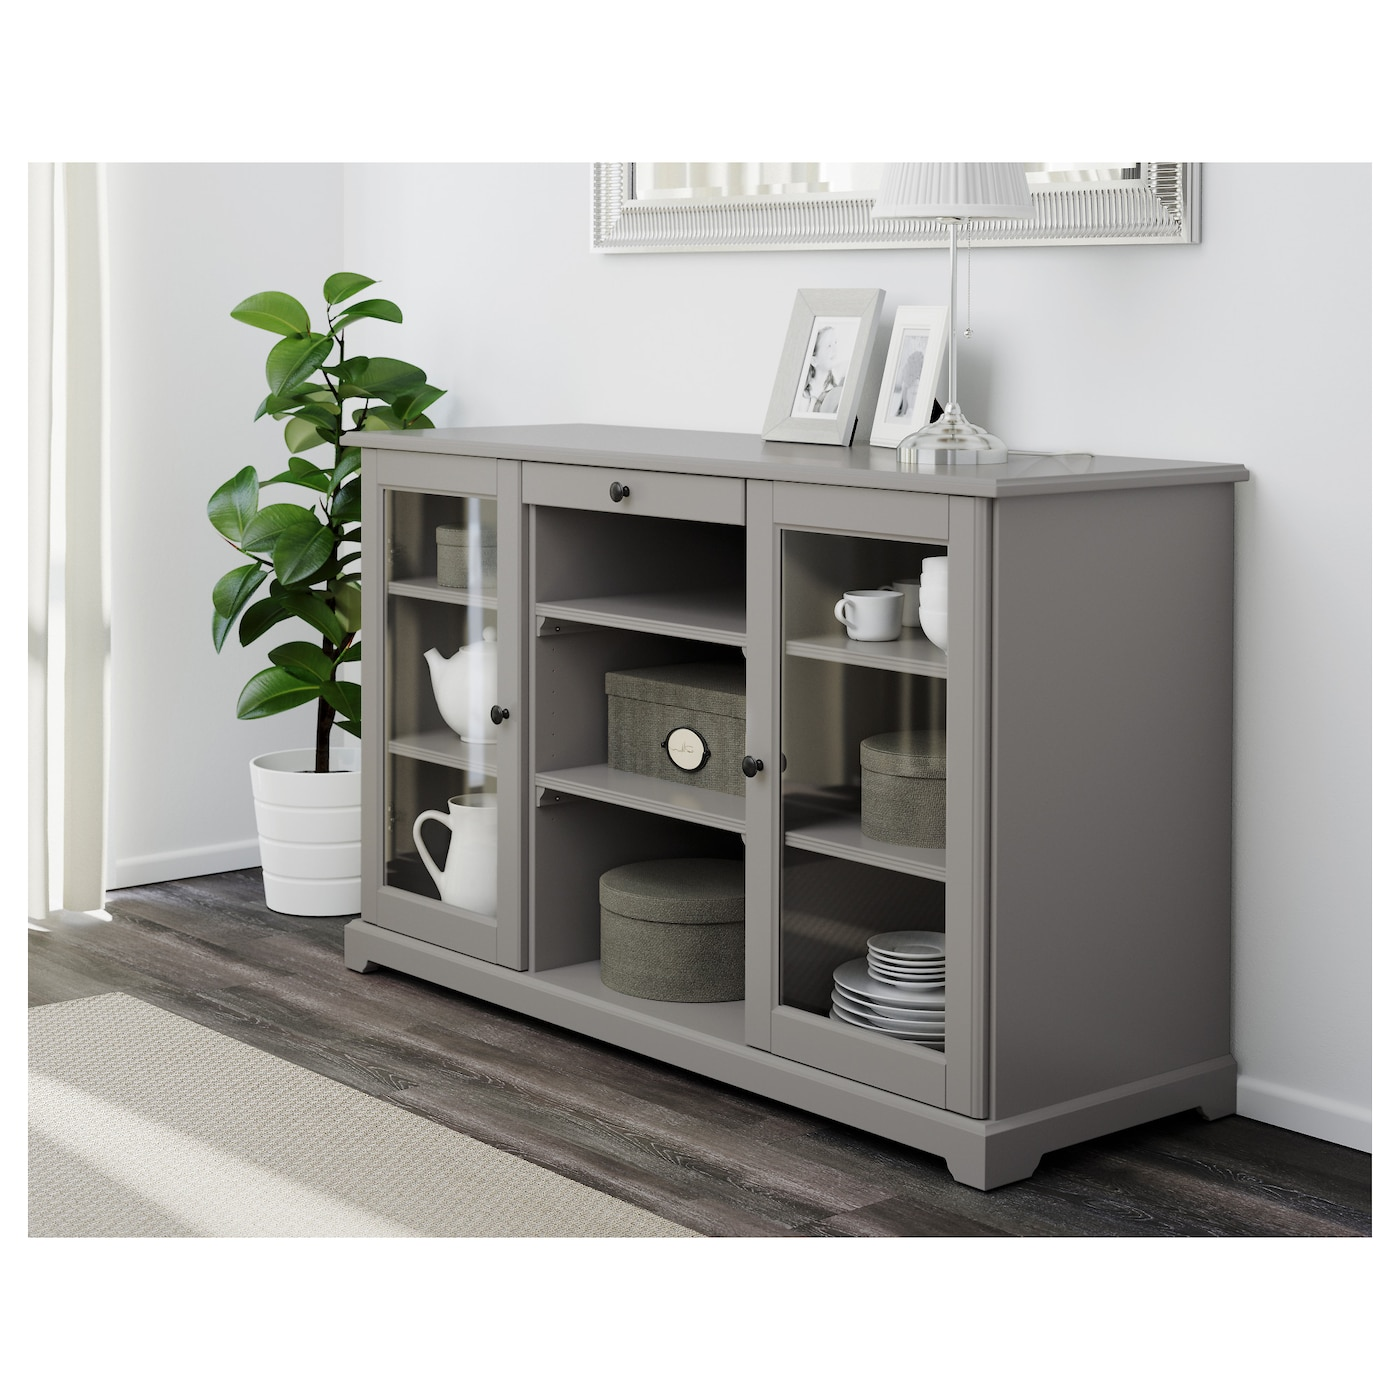 liatorp sideboard grey 145x87 cm ikea. Black Bedroom Furniture Sets. Home Design Ideas